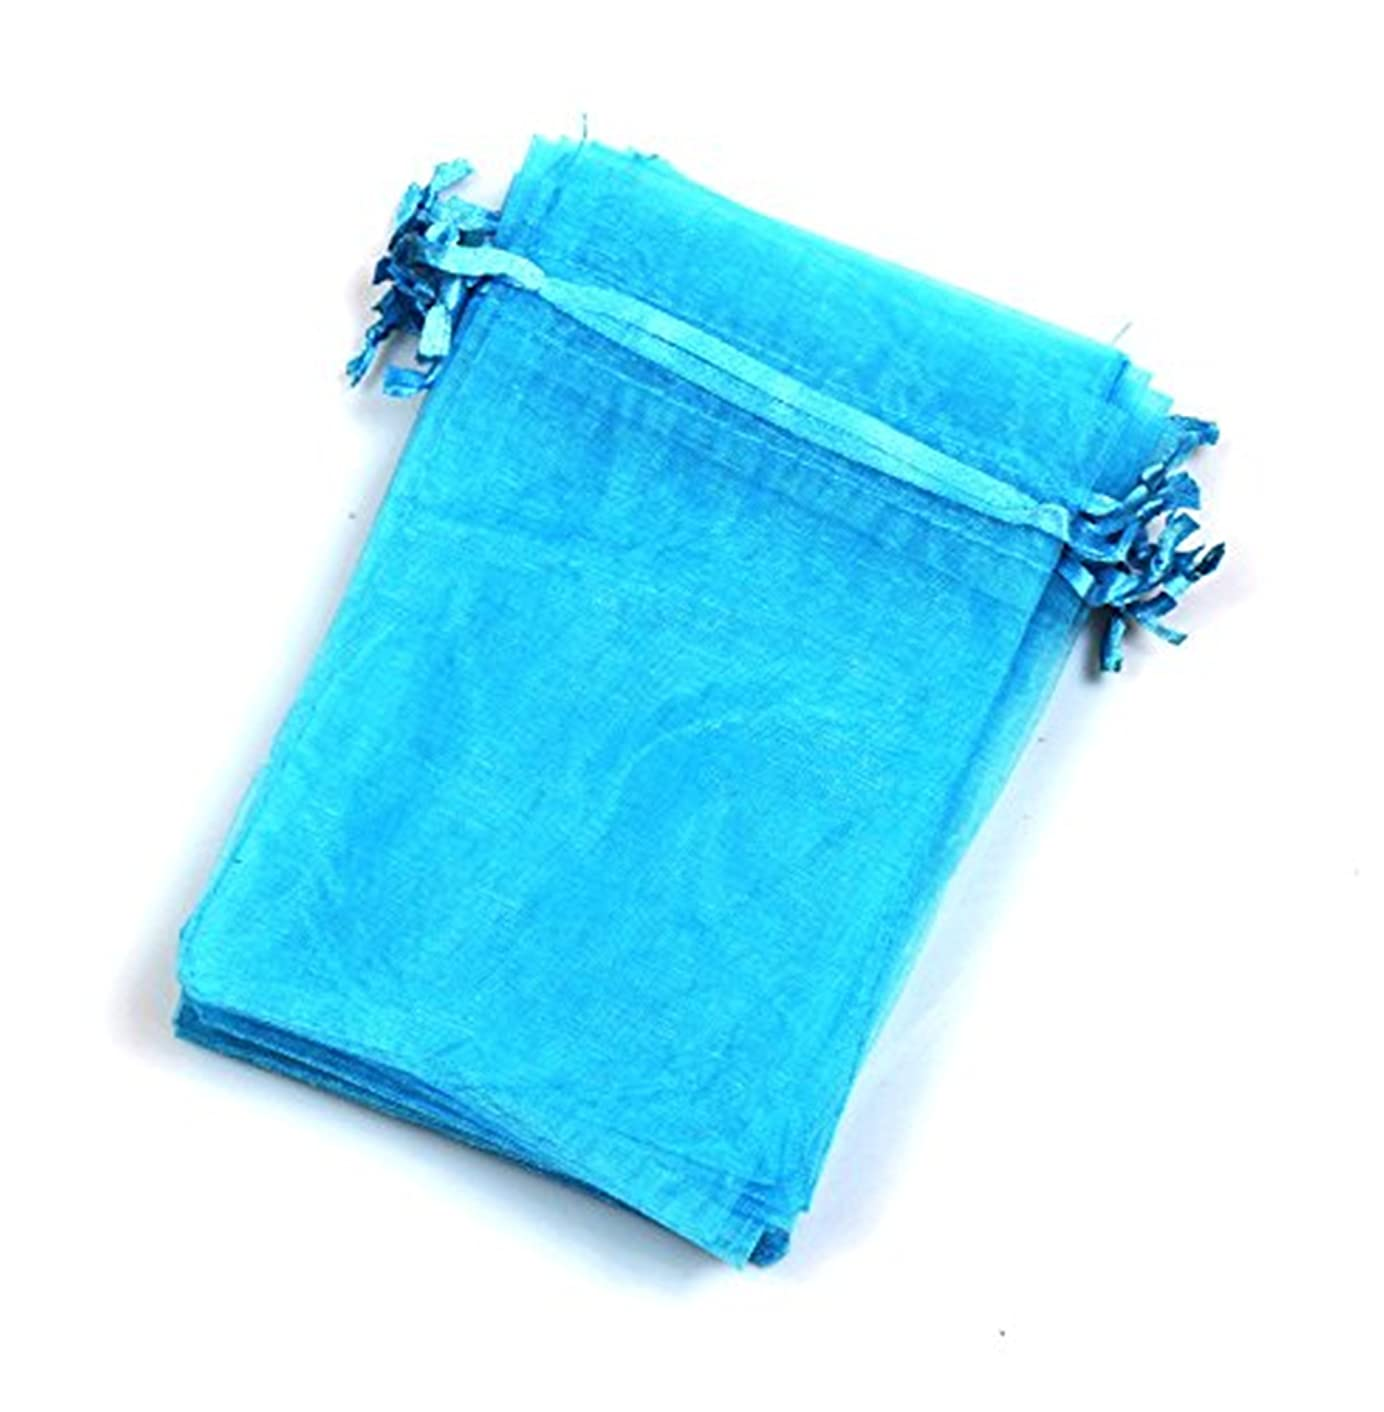 EDENKISS Blue Turquoise Color Drawstring Organza Jewelry Pouch Bags 2.8x3.6 4x6 5x7 Wholesale Option (100, 4x6)